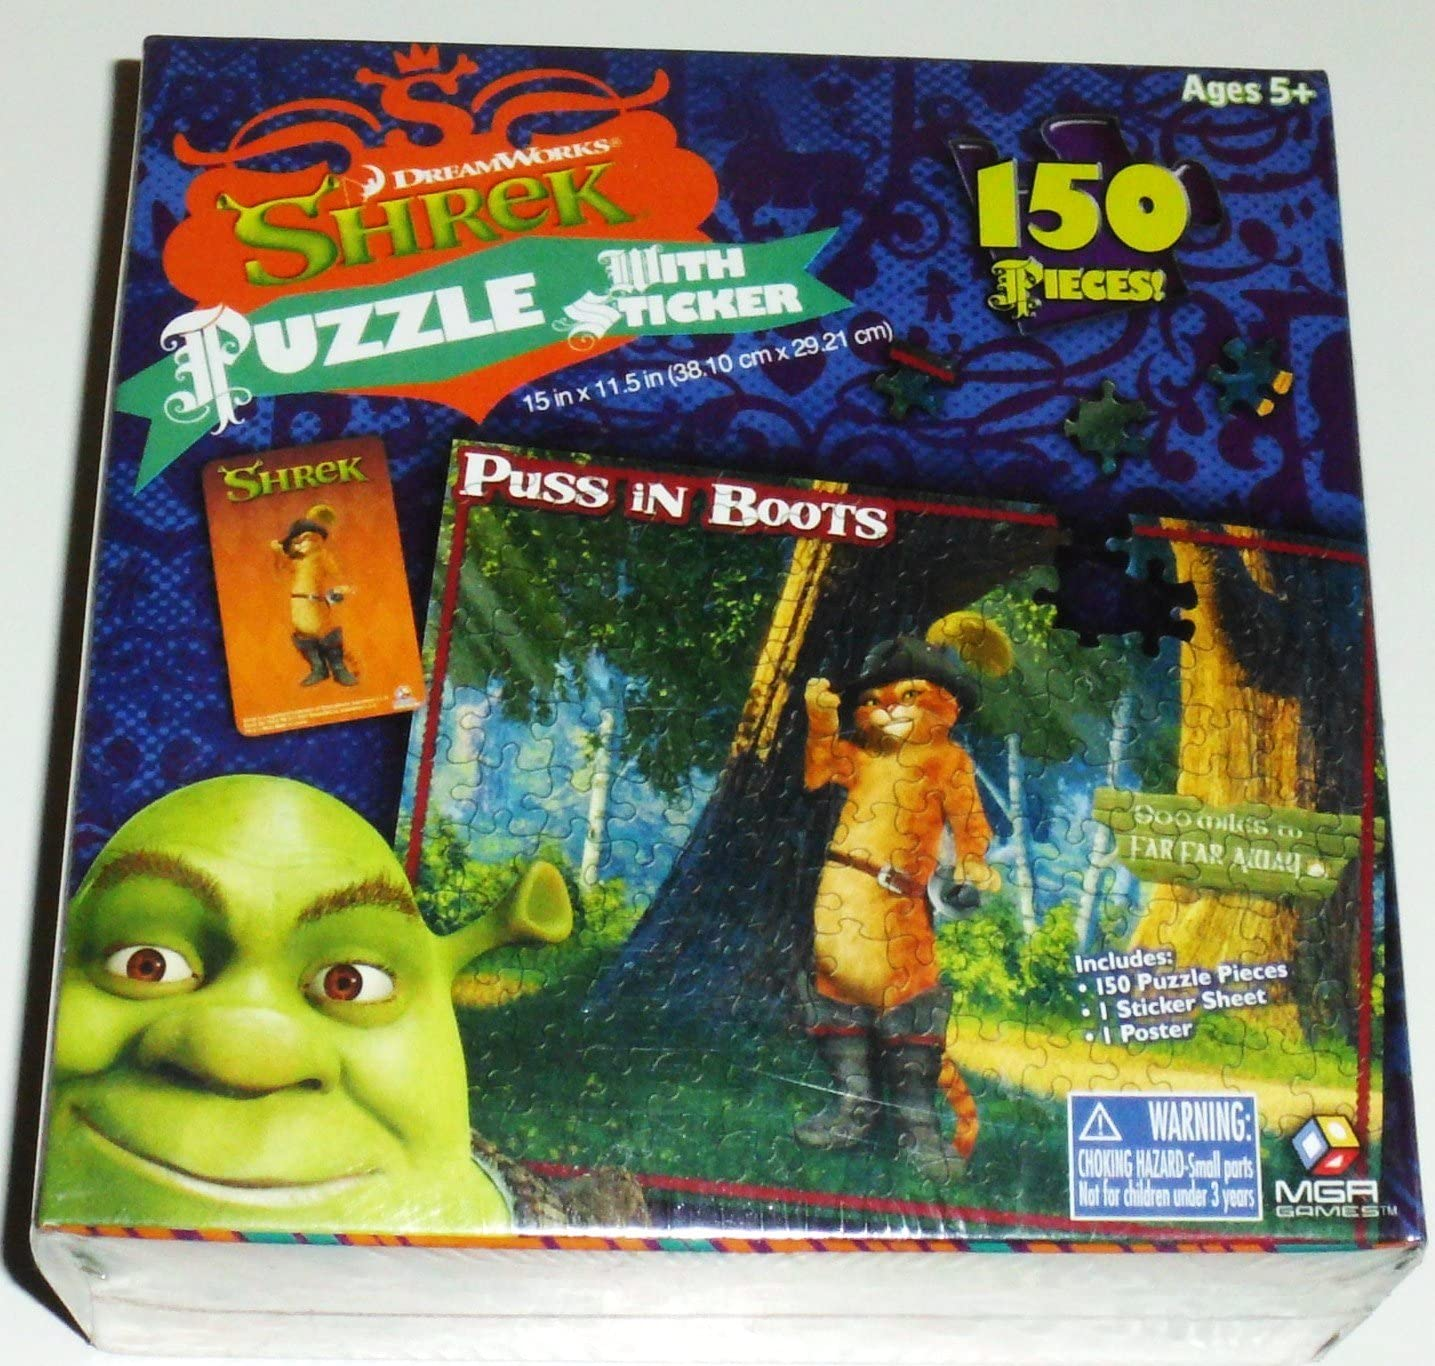 150 pieces Puss in Boots Puzzle from Shrek the Movie